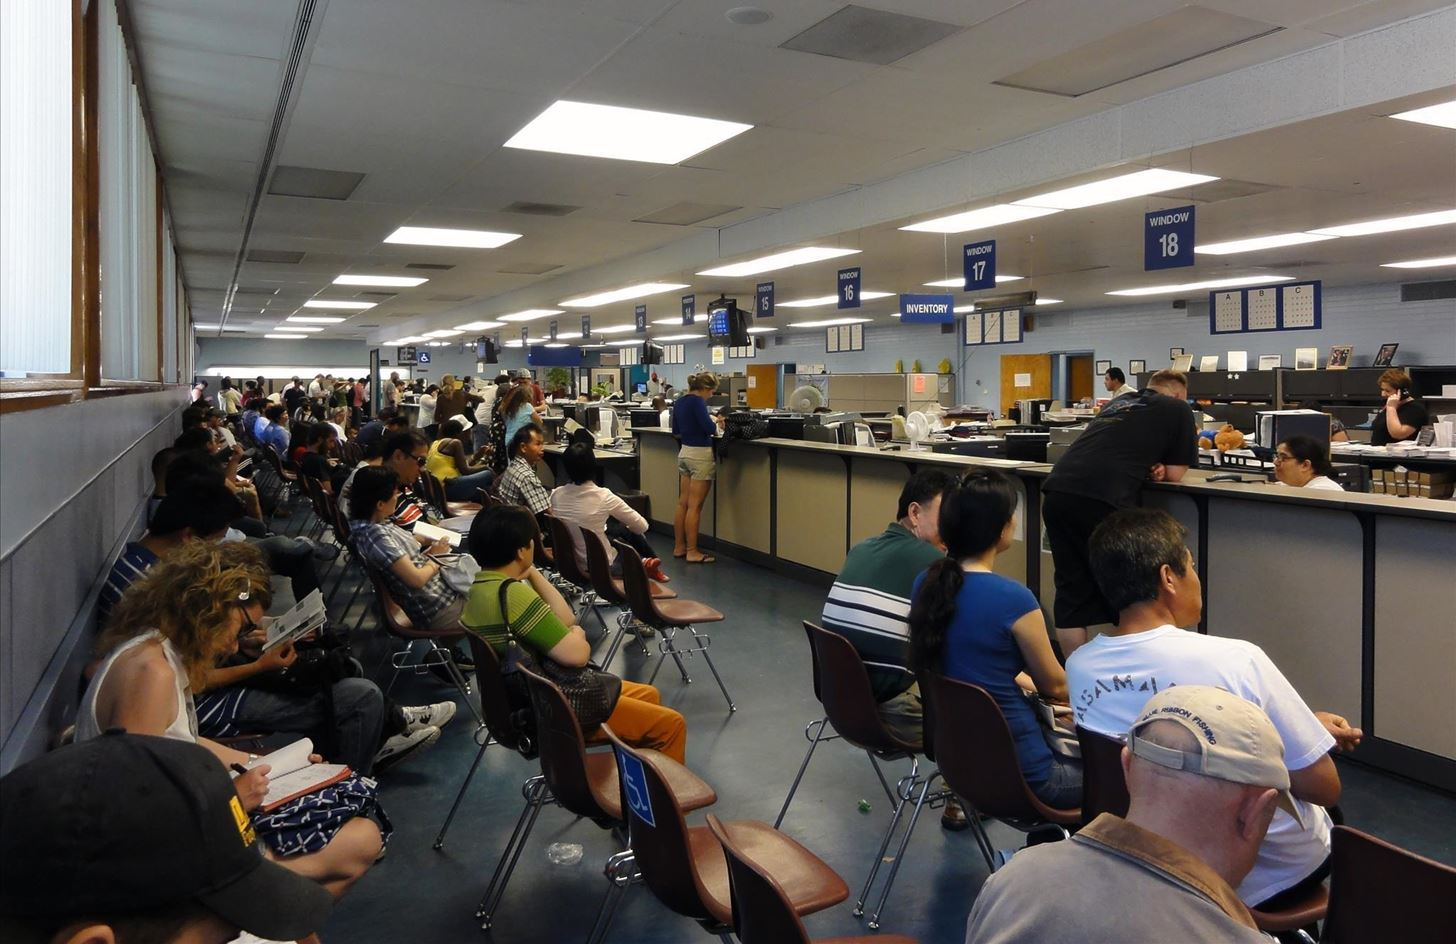 Any DMV is busy. As the Real ID deadline approaches, it will be even busier.